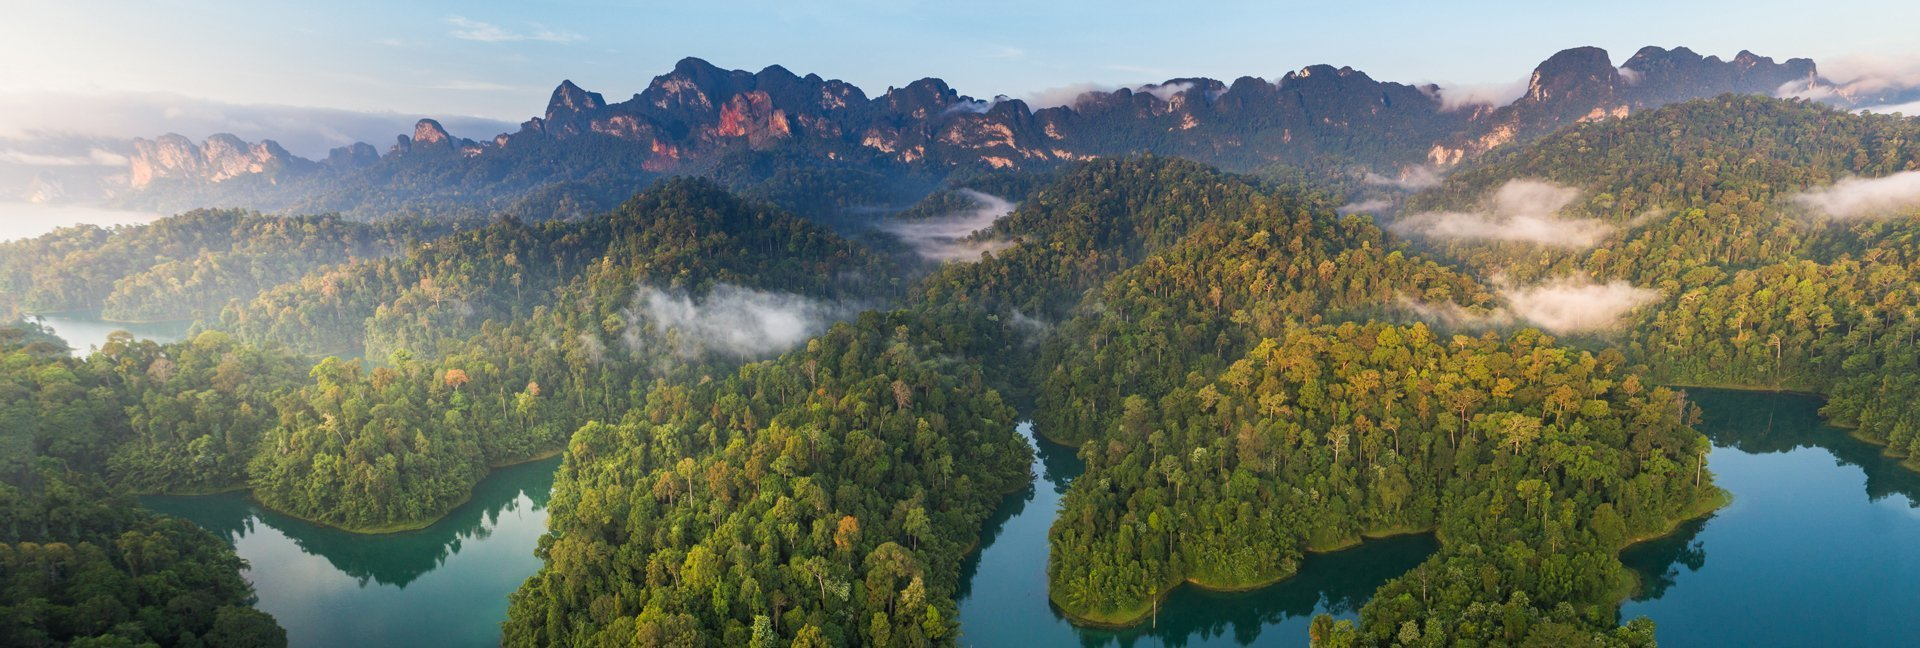 View of tropical rainforest over Khao Sok National Park